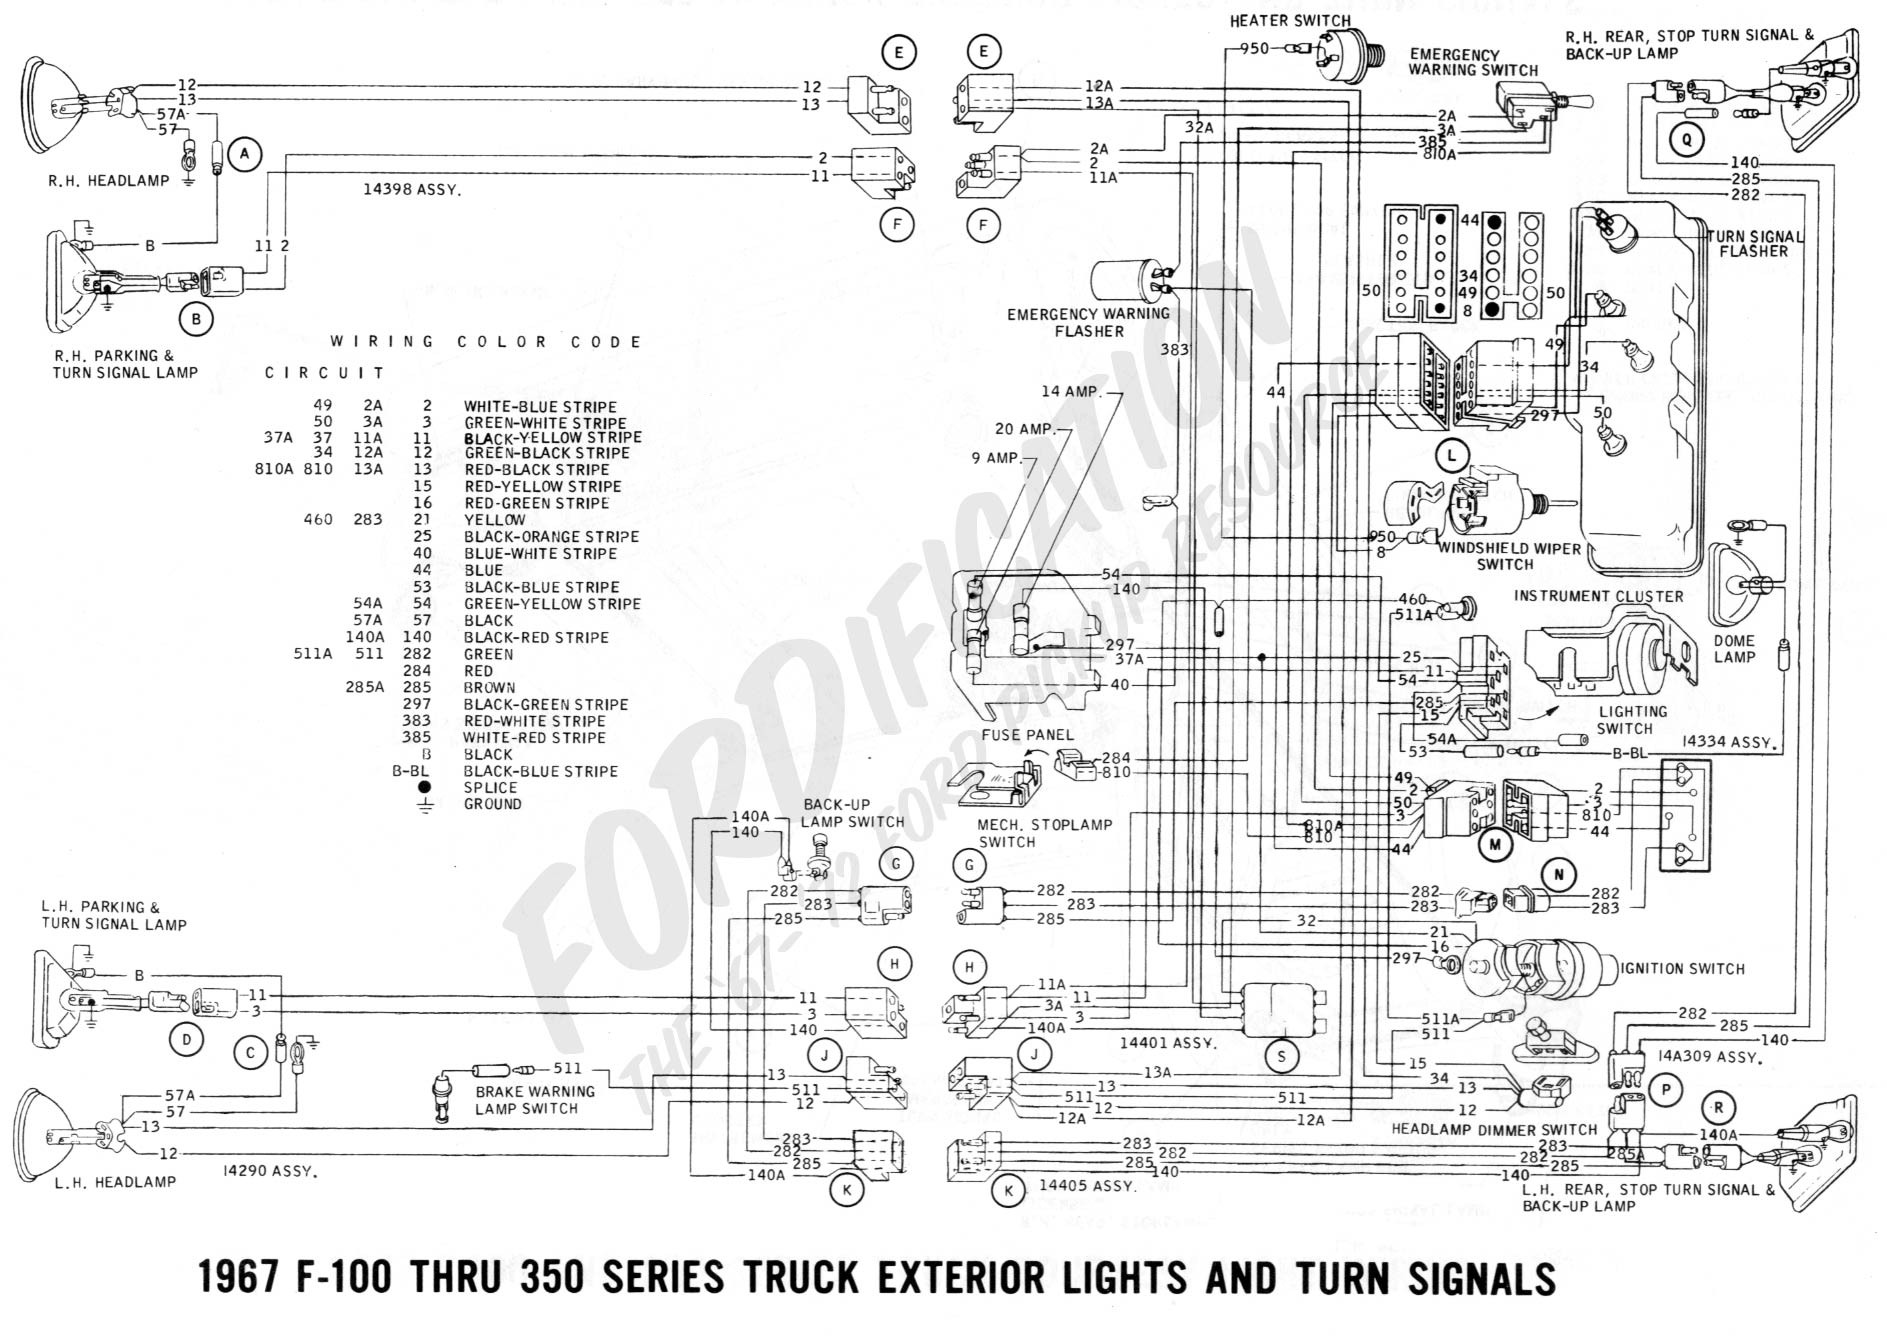 78 ford fairmont wiring diagram diy wiring diagrams u2022 rh newsmoke co au fairmont stereo wiring diagram au fairmont stereo wiring diagram